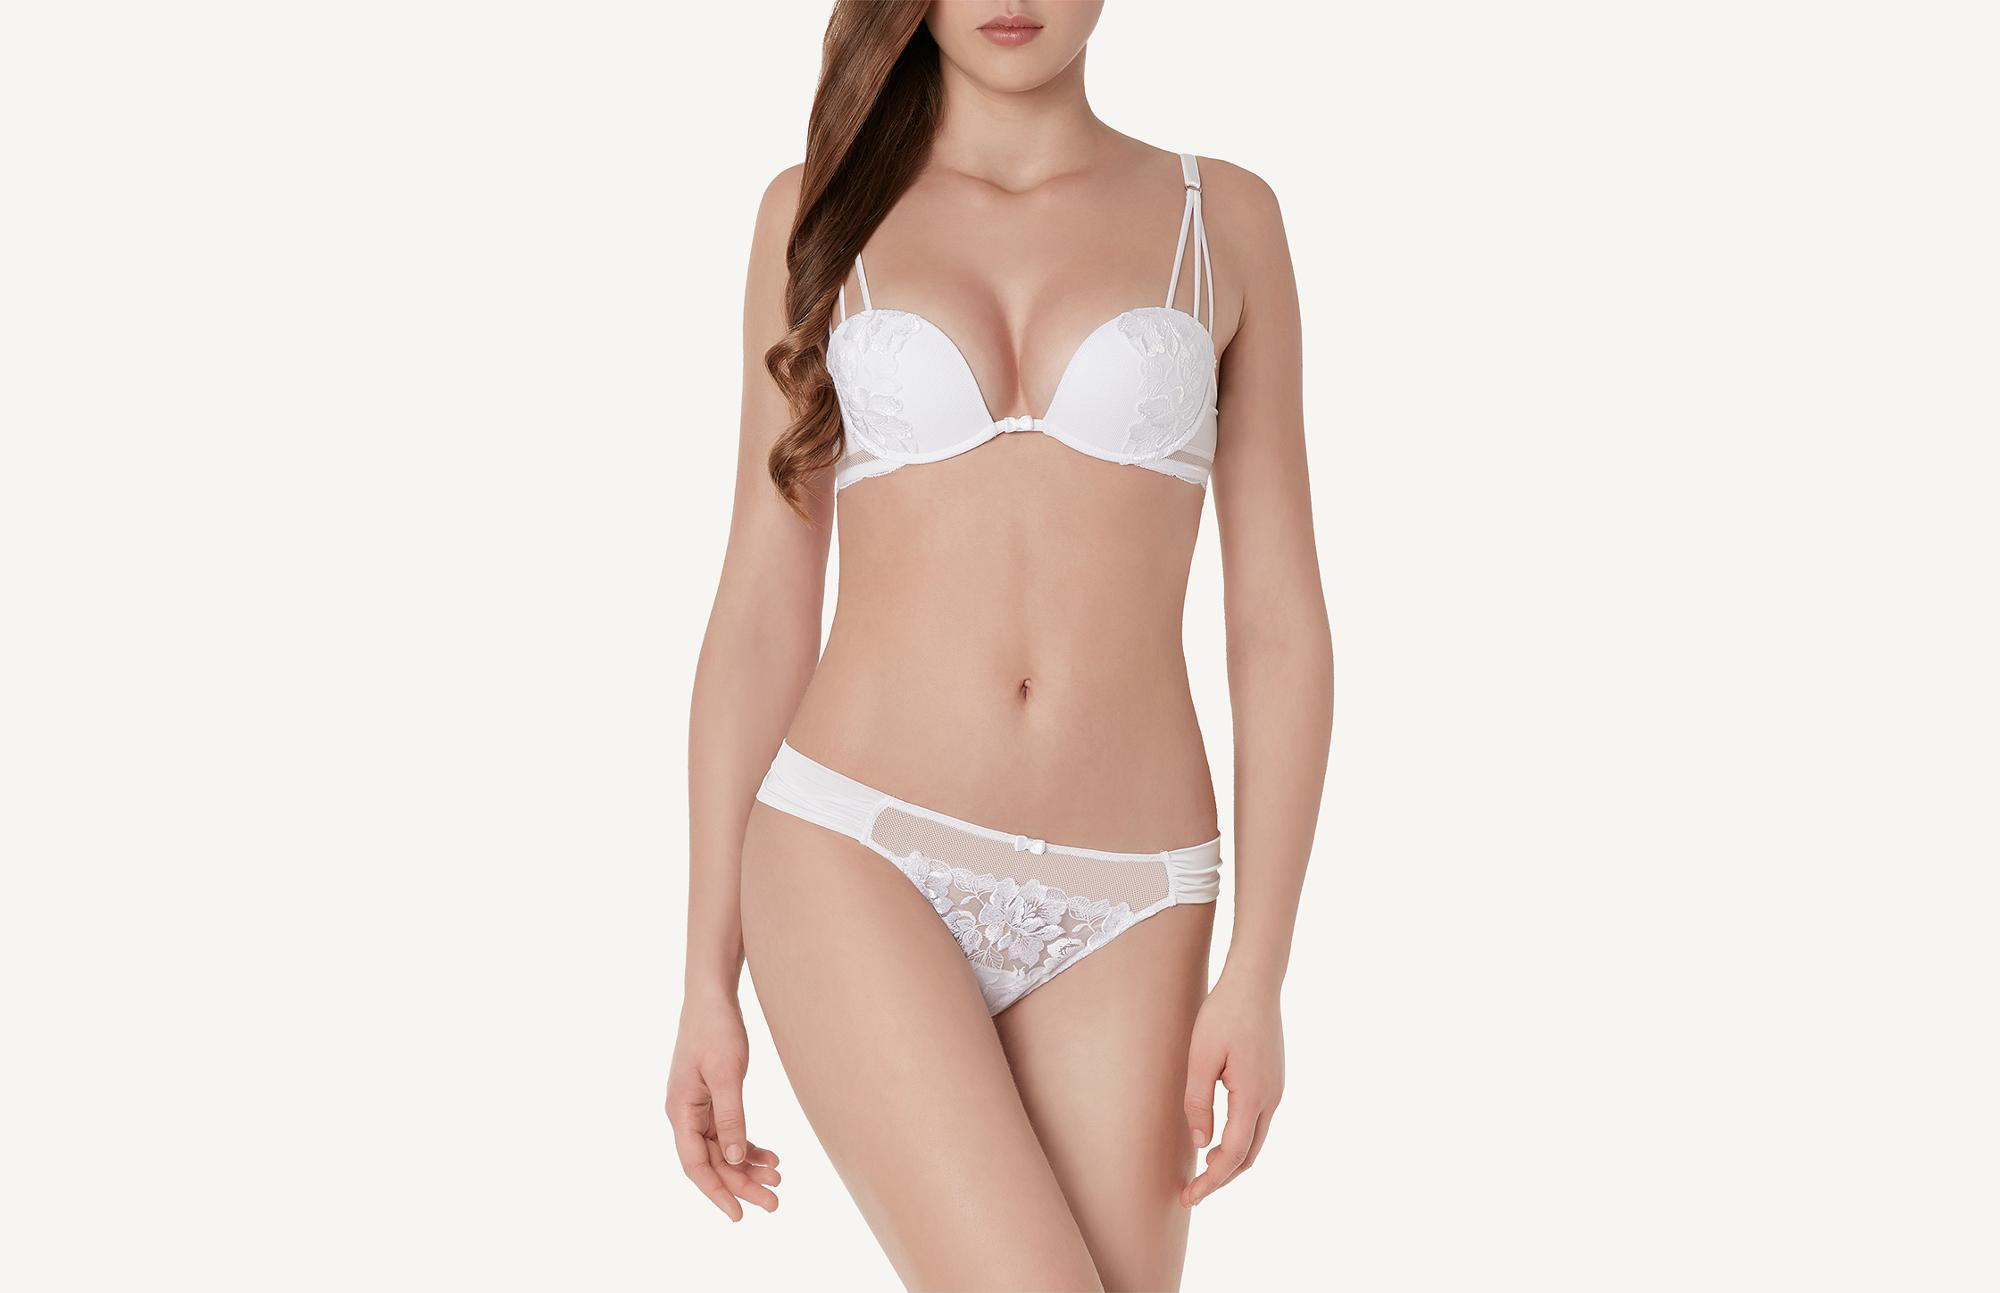 a2ba144d2a5ca Lyst - Intimissimi Blooming Embroidery Elena Balconette Bra in White